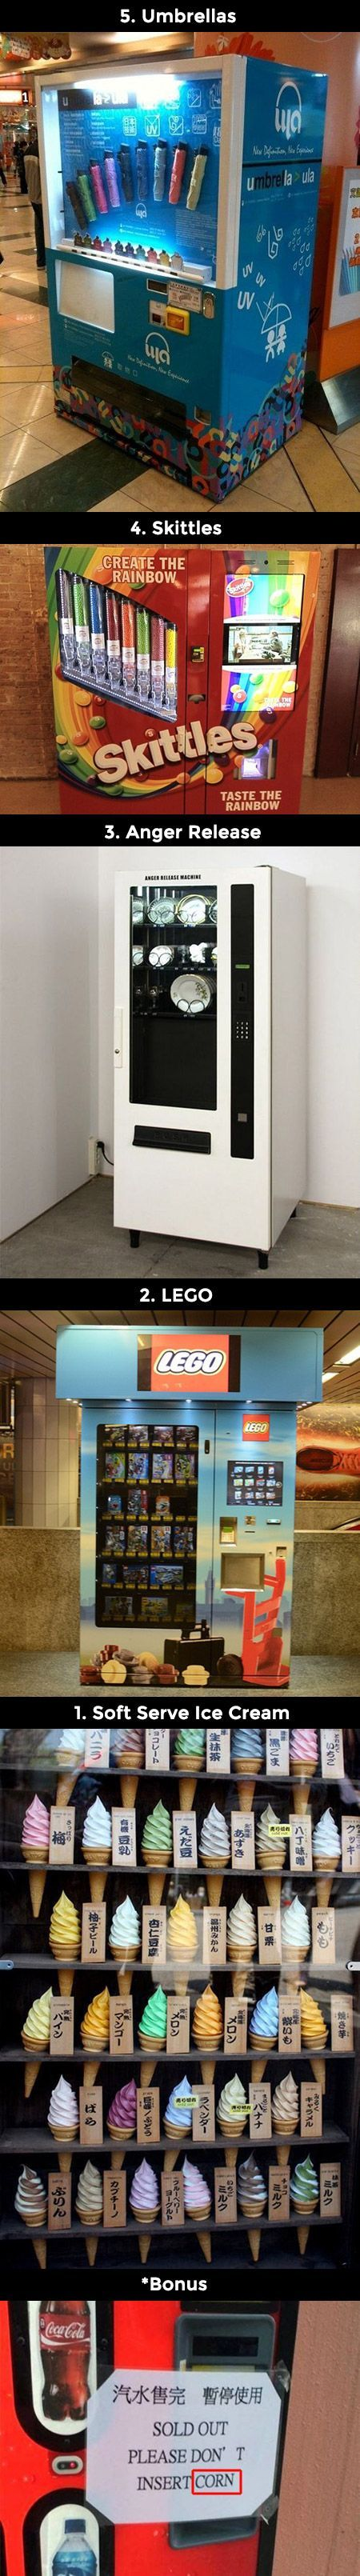 We see them everyday, but here are five more unusual vending machines from around the world.